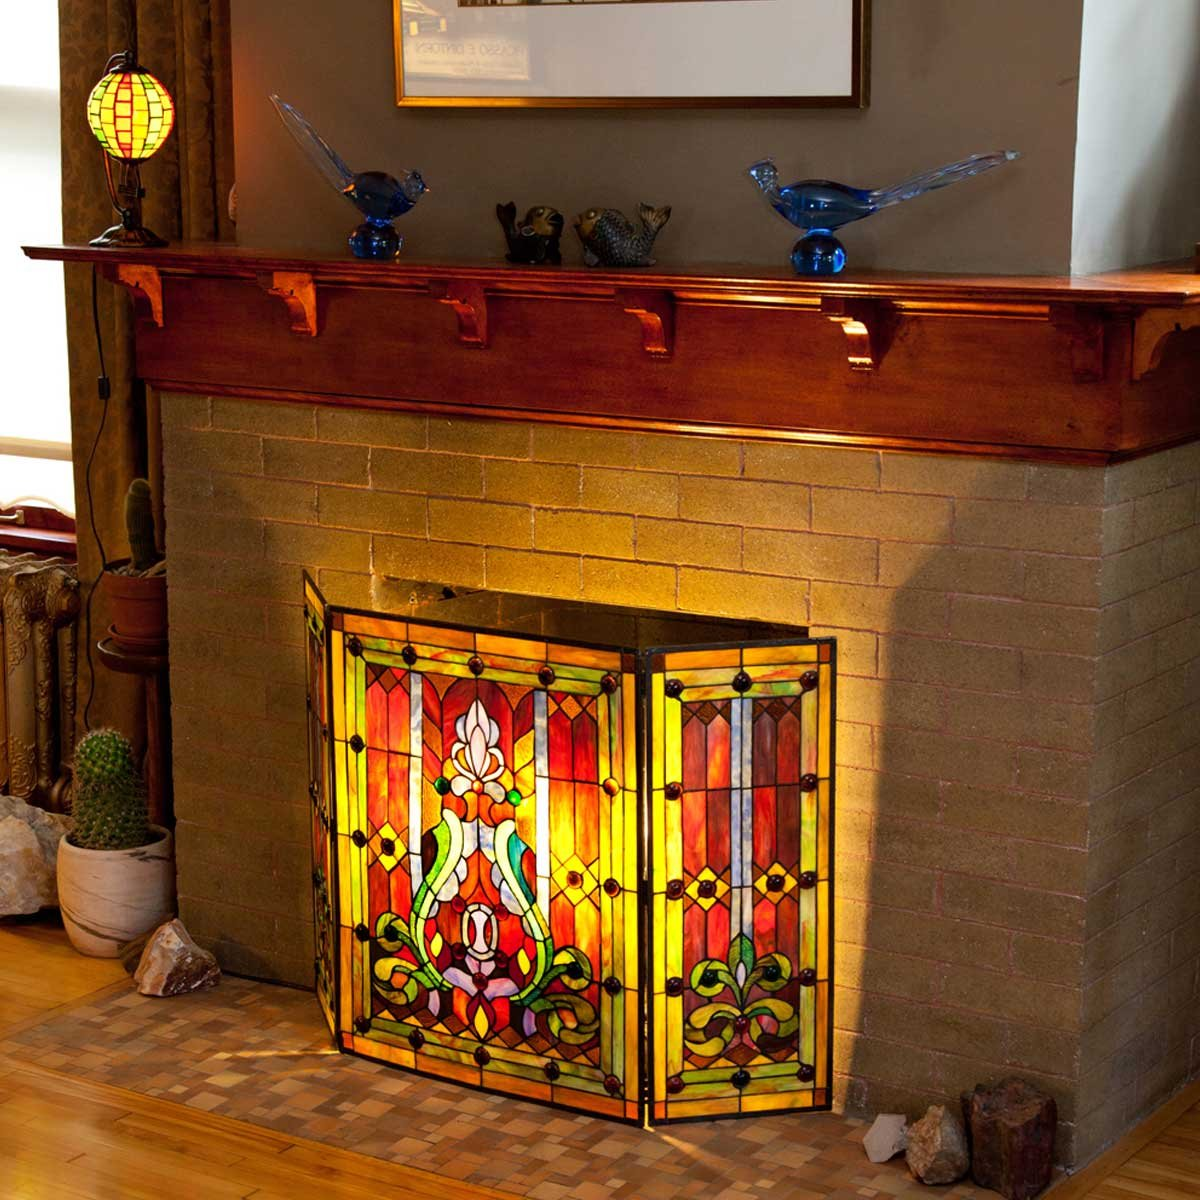 Amazon.com: River of Goods Fireplace Screen: Stained Glass Tiffany Style Screens - Gas & Wood Burning Fireplaces: Home Improvement